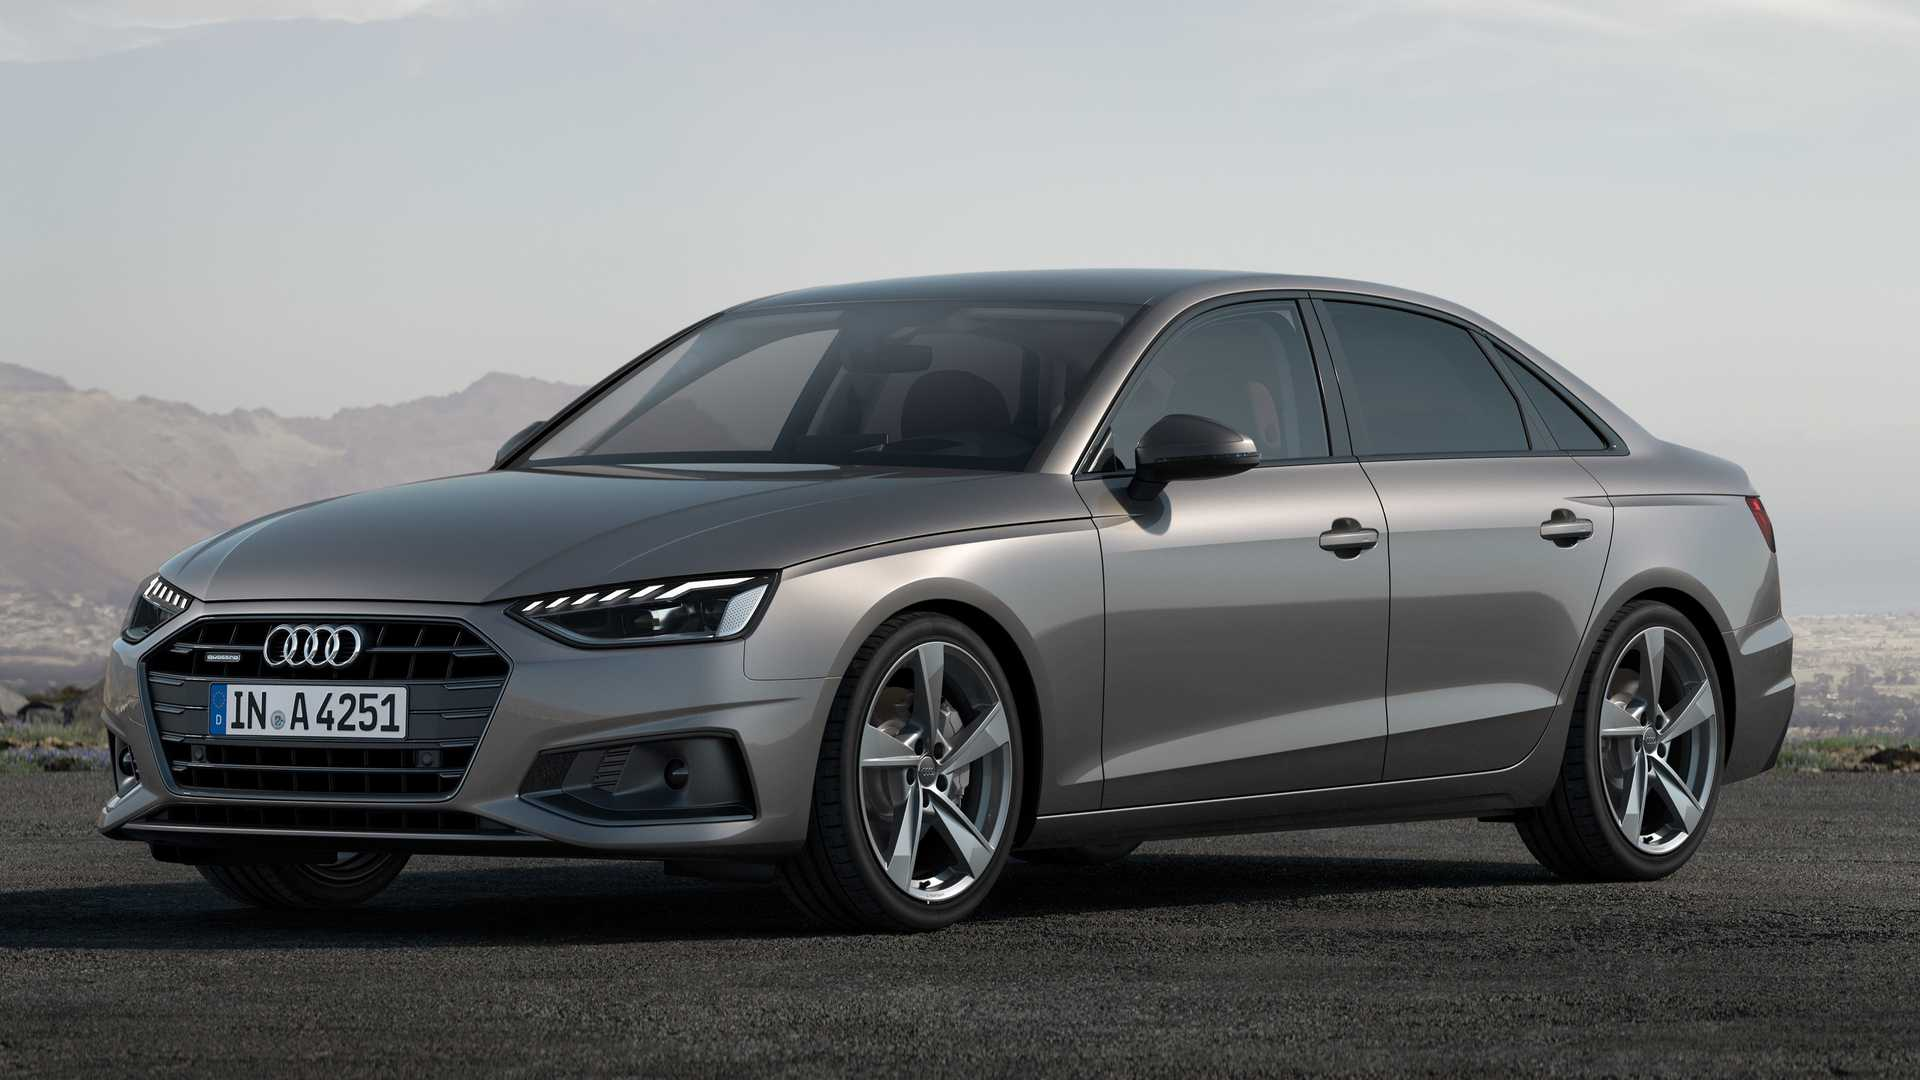 96 Best Review Audi A4 Kombi 2020 Release by Audi A4 Kombi 2020